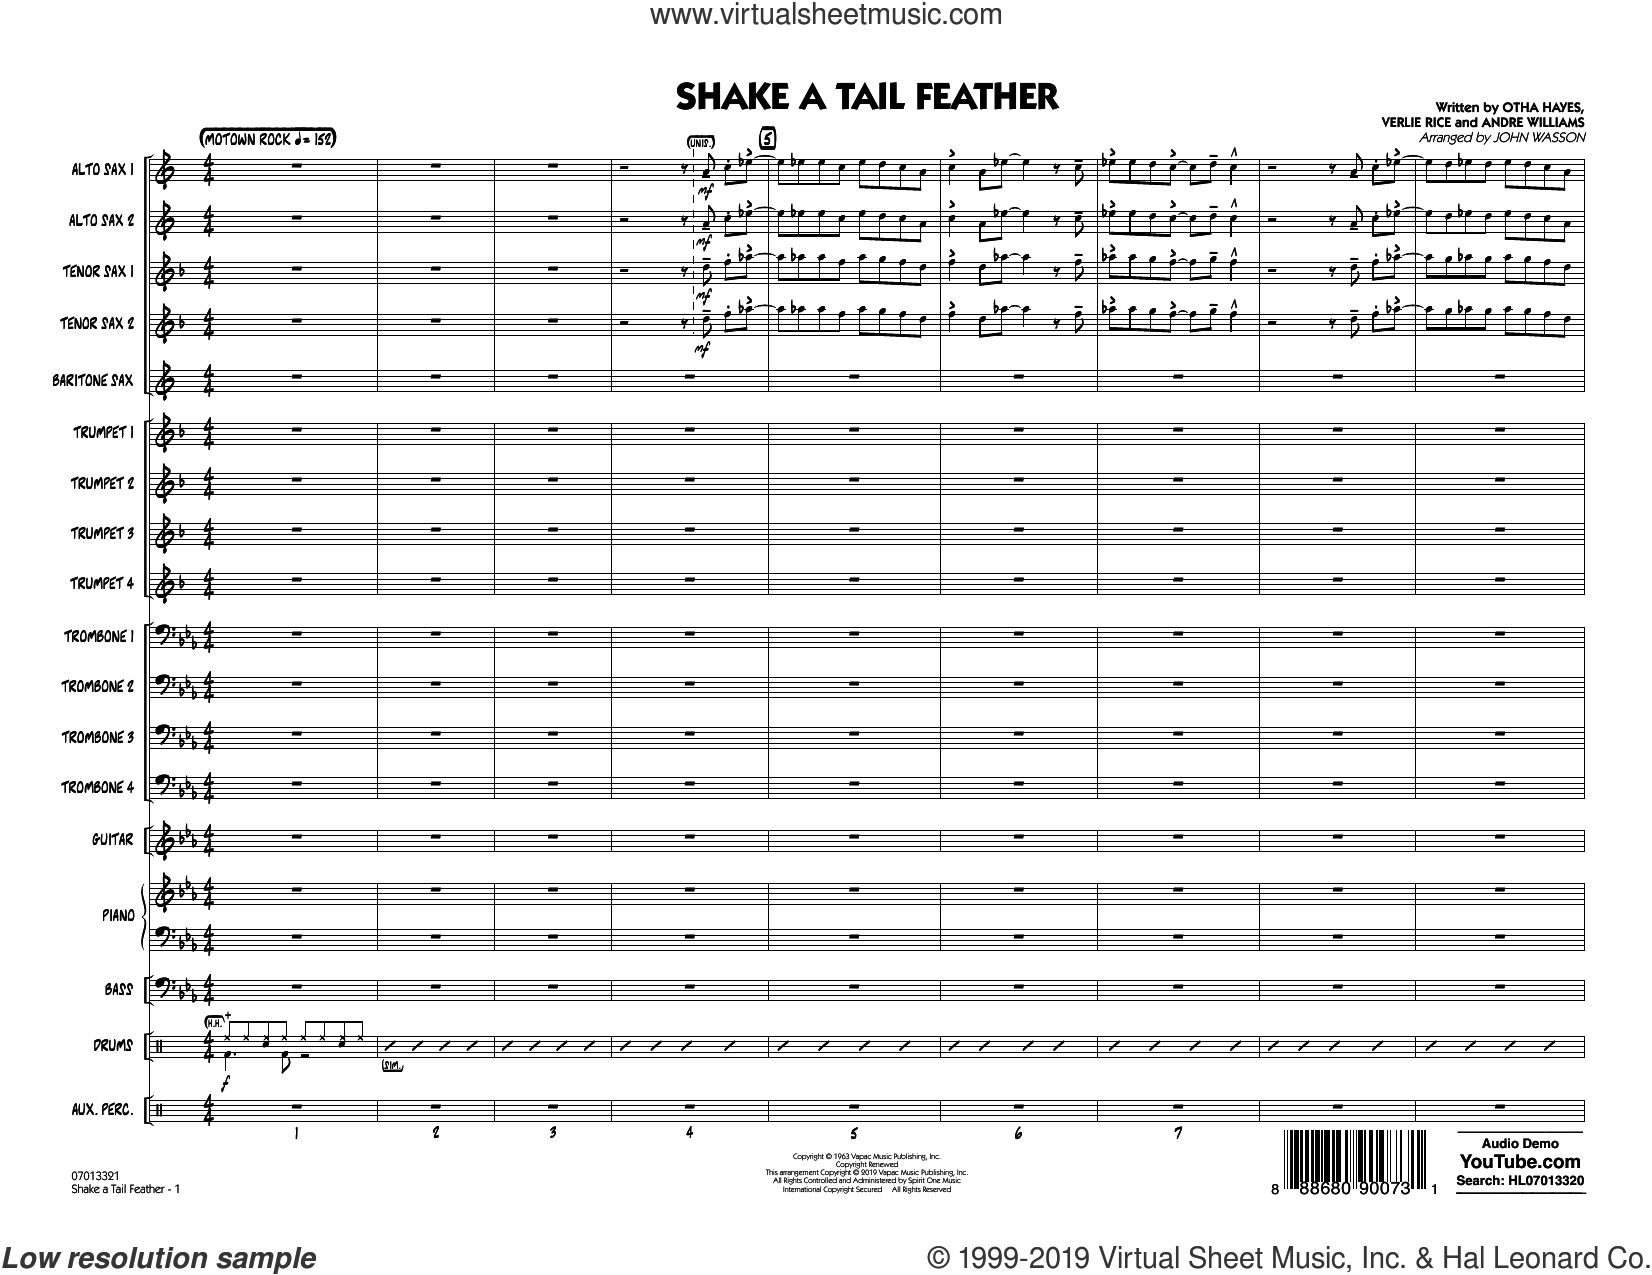 Shake a Tail Feather (arr. John Wasson) (COMPLETE) sheet music for jazz band by Ray Charles, Andre Williams, John Wasson, Otha M. Hayes and Verlie Rice, intermediate skill level